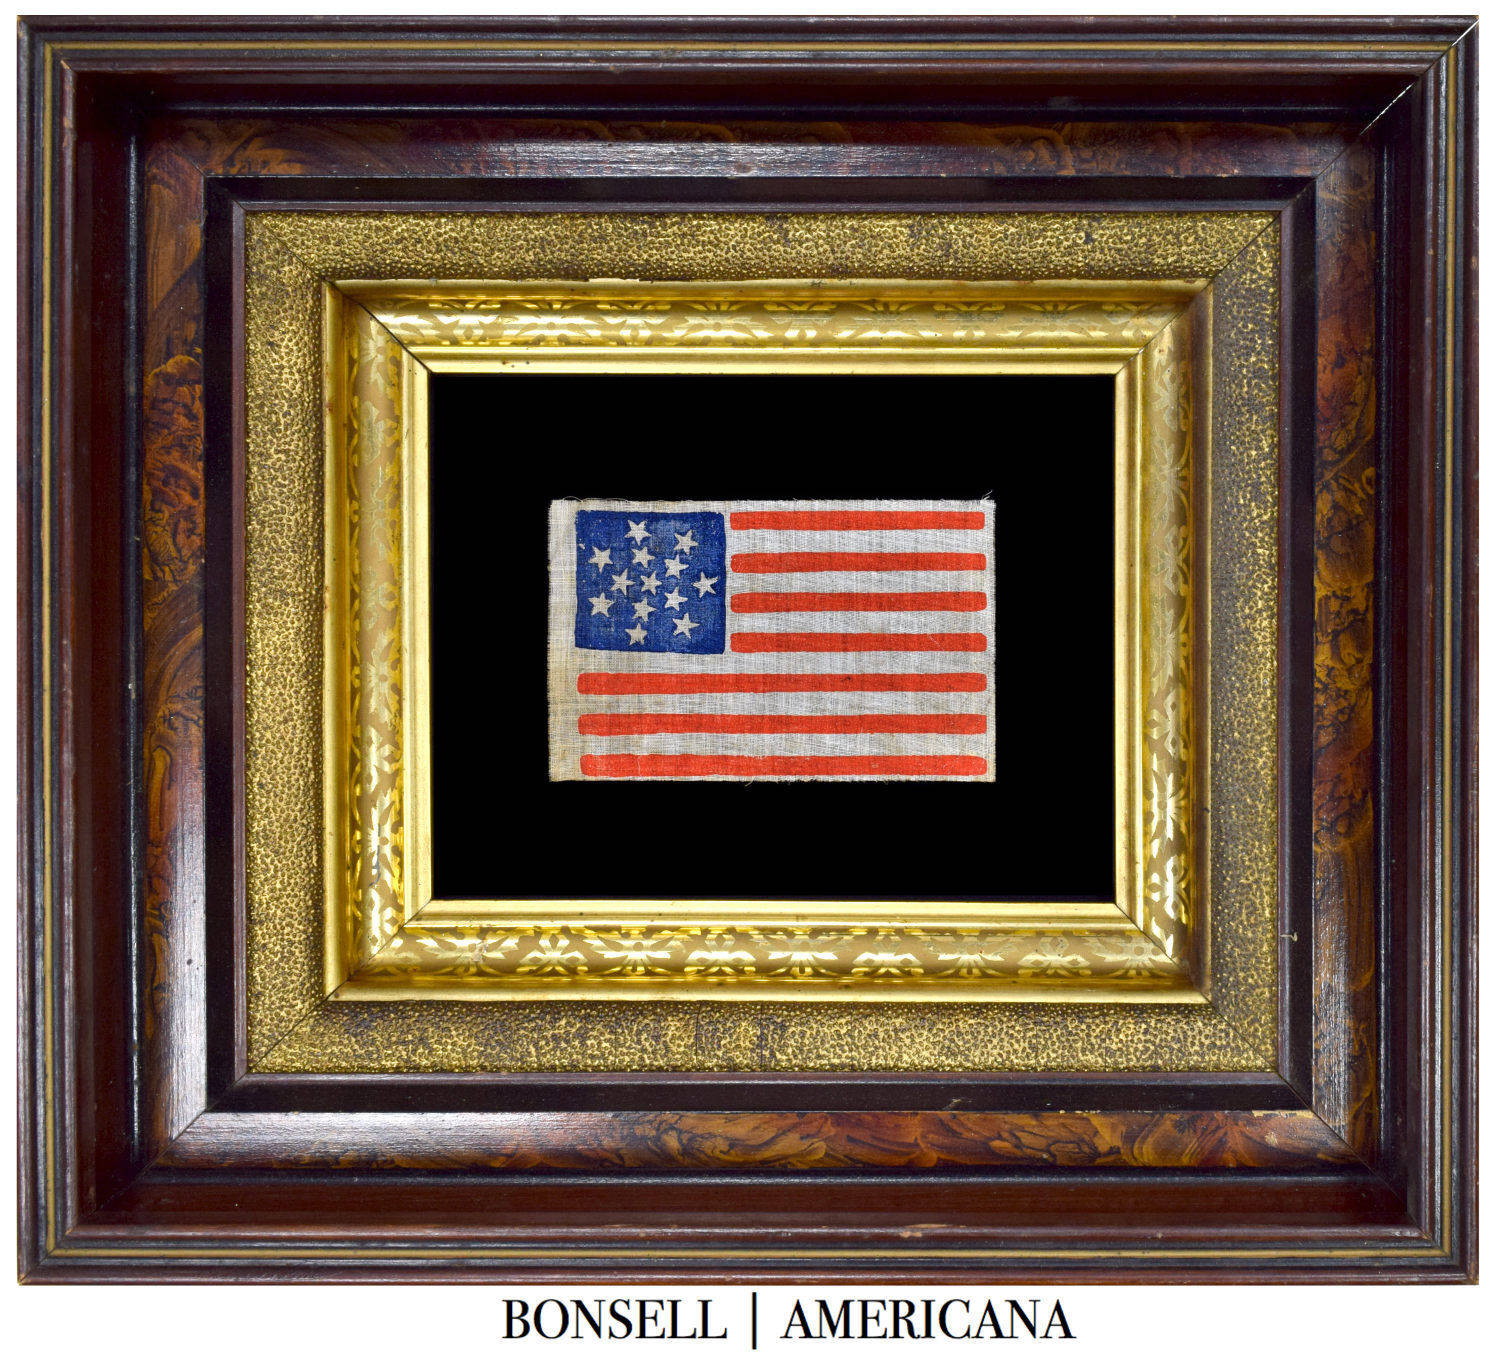 13 Star Antique Flag with a Snowflake Medallion Pattern